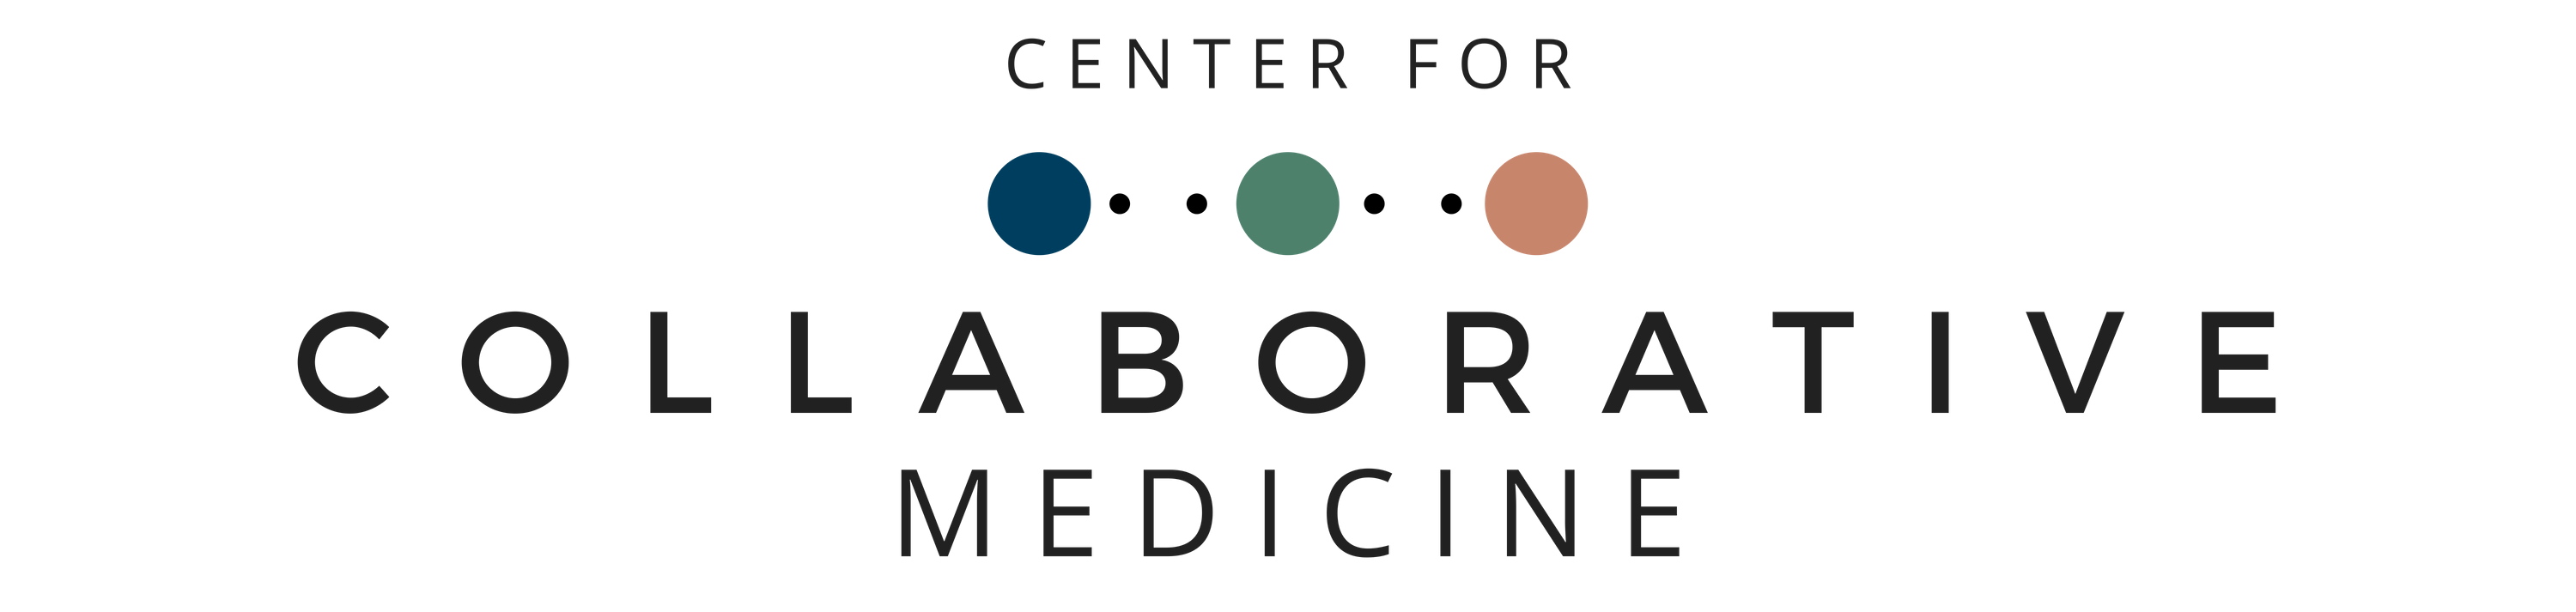 Center for Collaborative Medicine